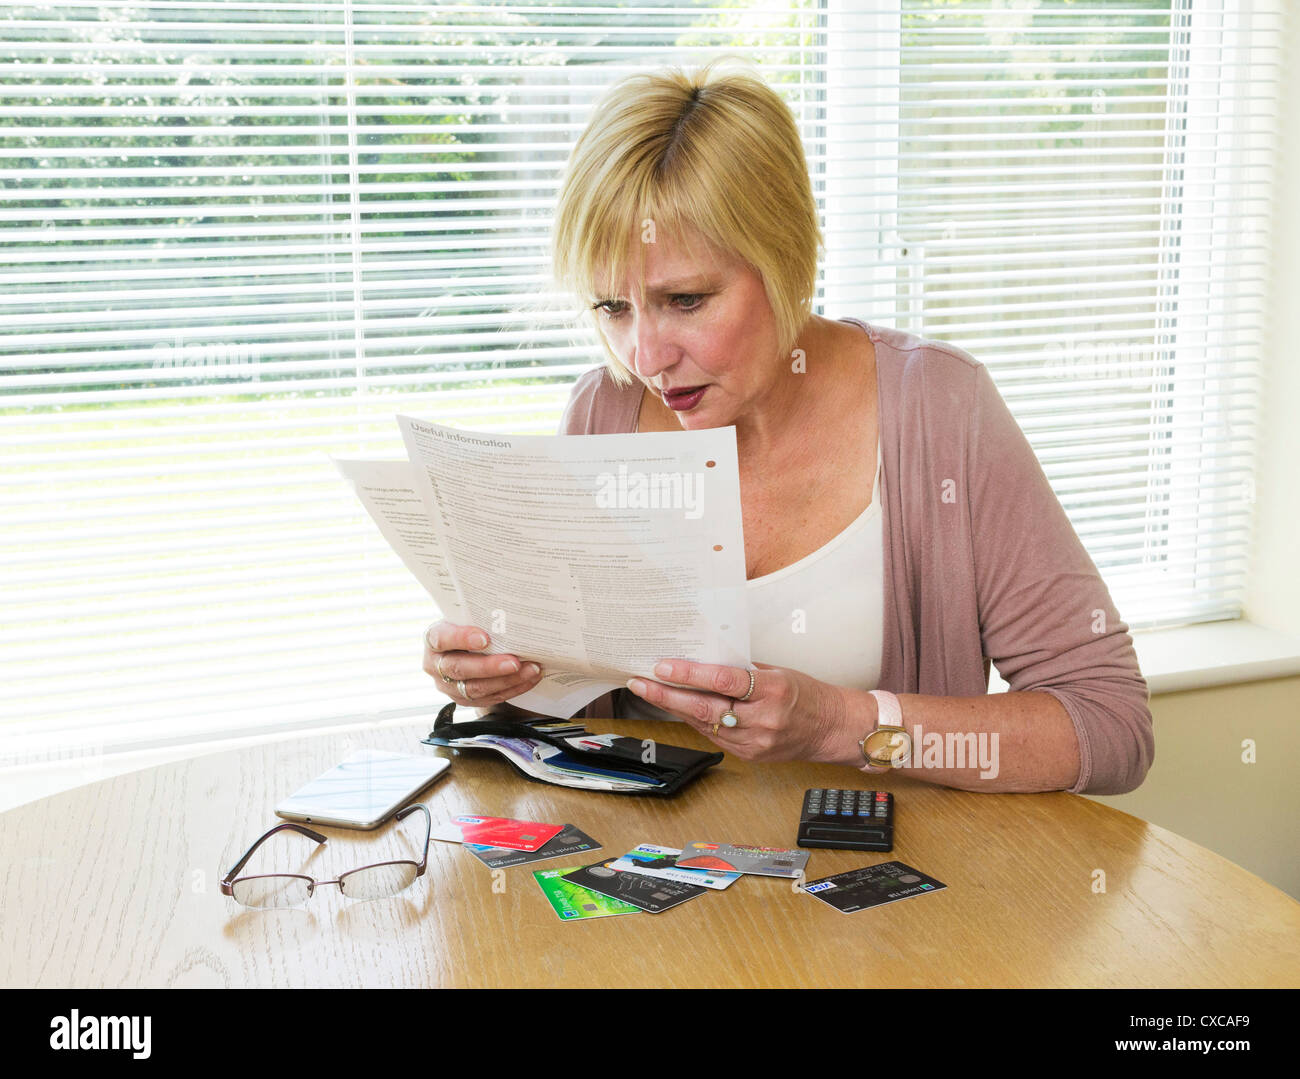 woman shocked at reading her credit card bill - Stock Image